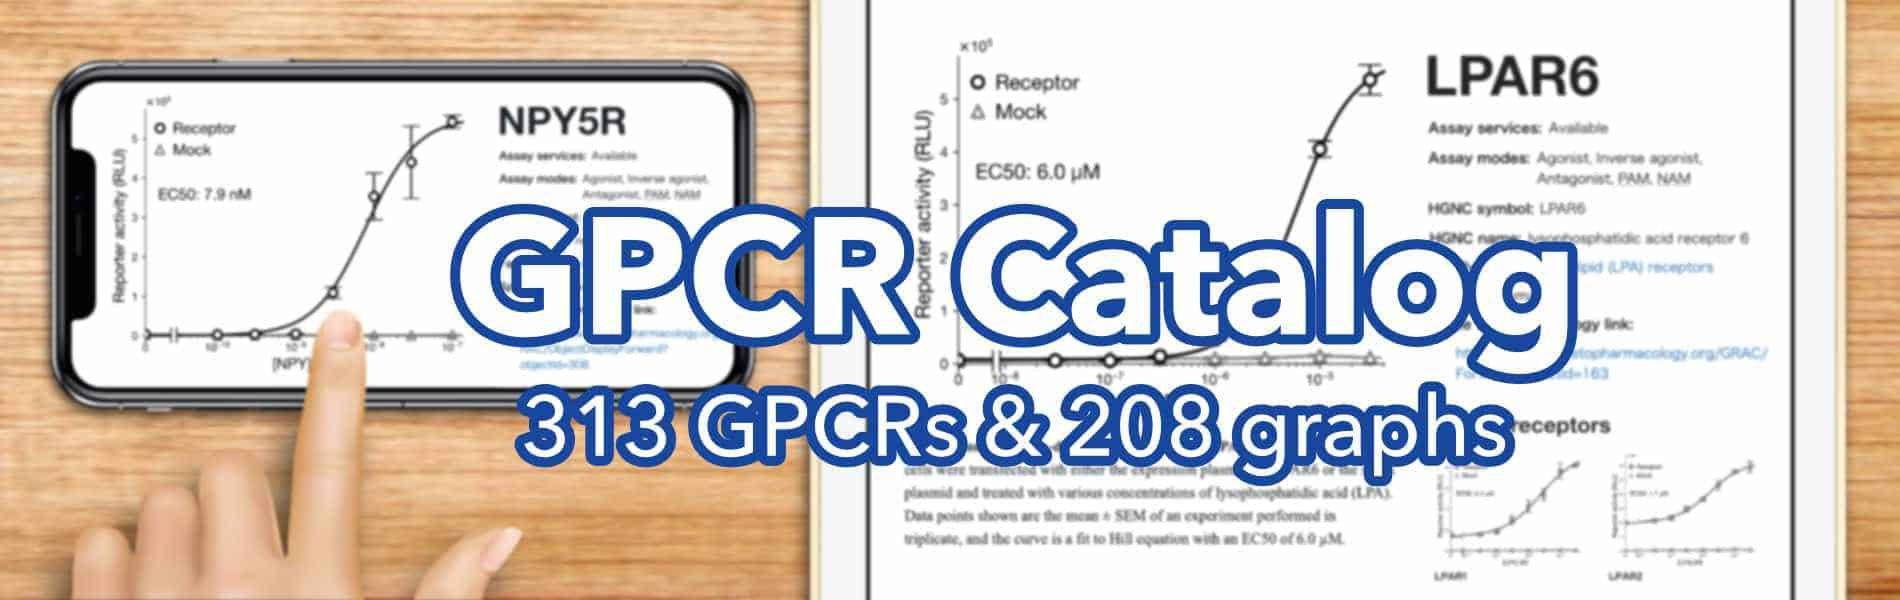 GPCR catalog. 313 human receptors are listed and 208 of them have dose-response curves, EC50, available assay modes, and more.